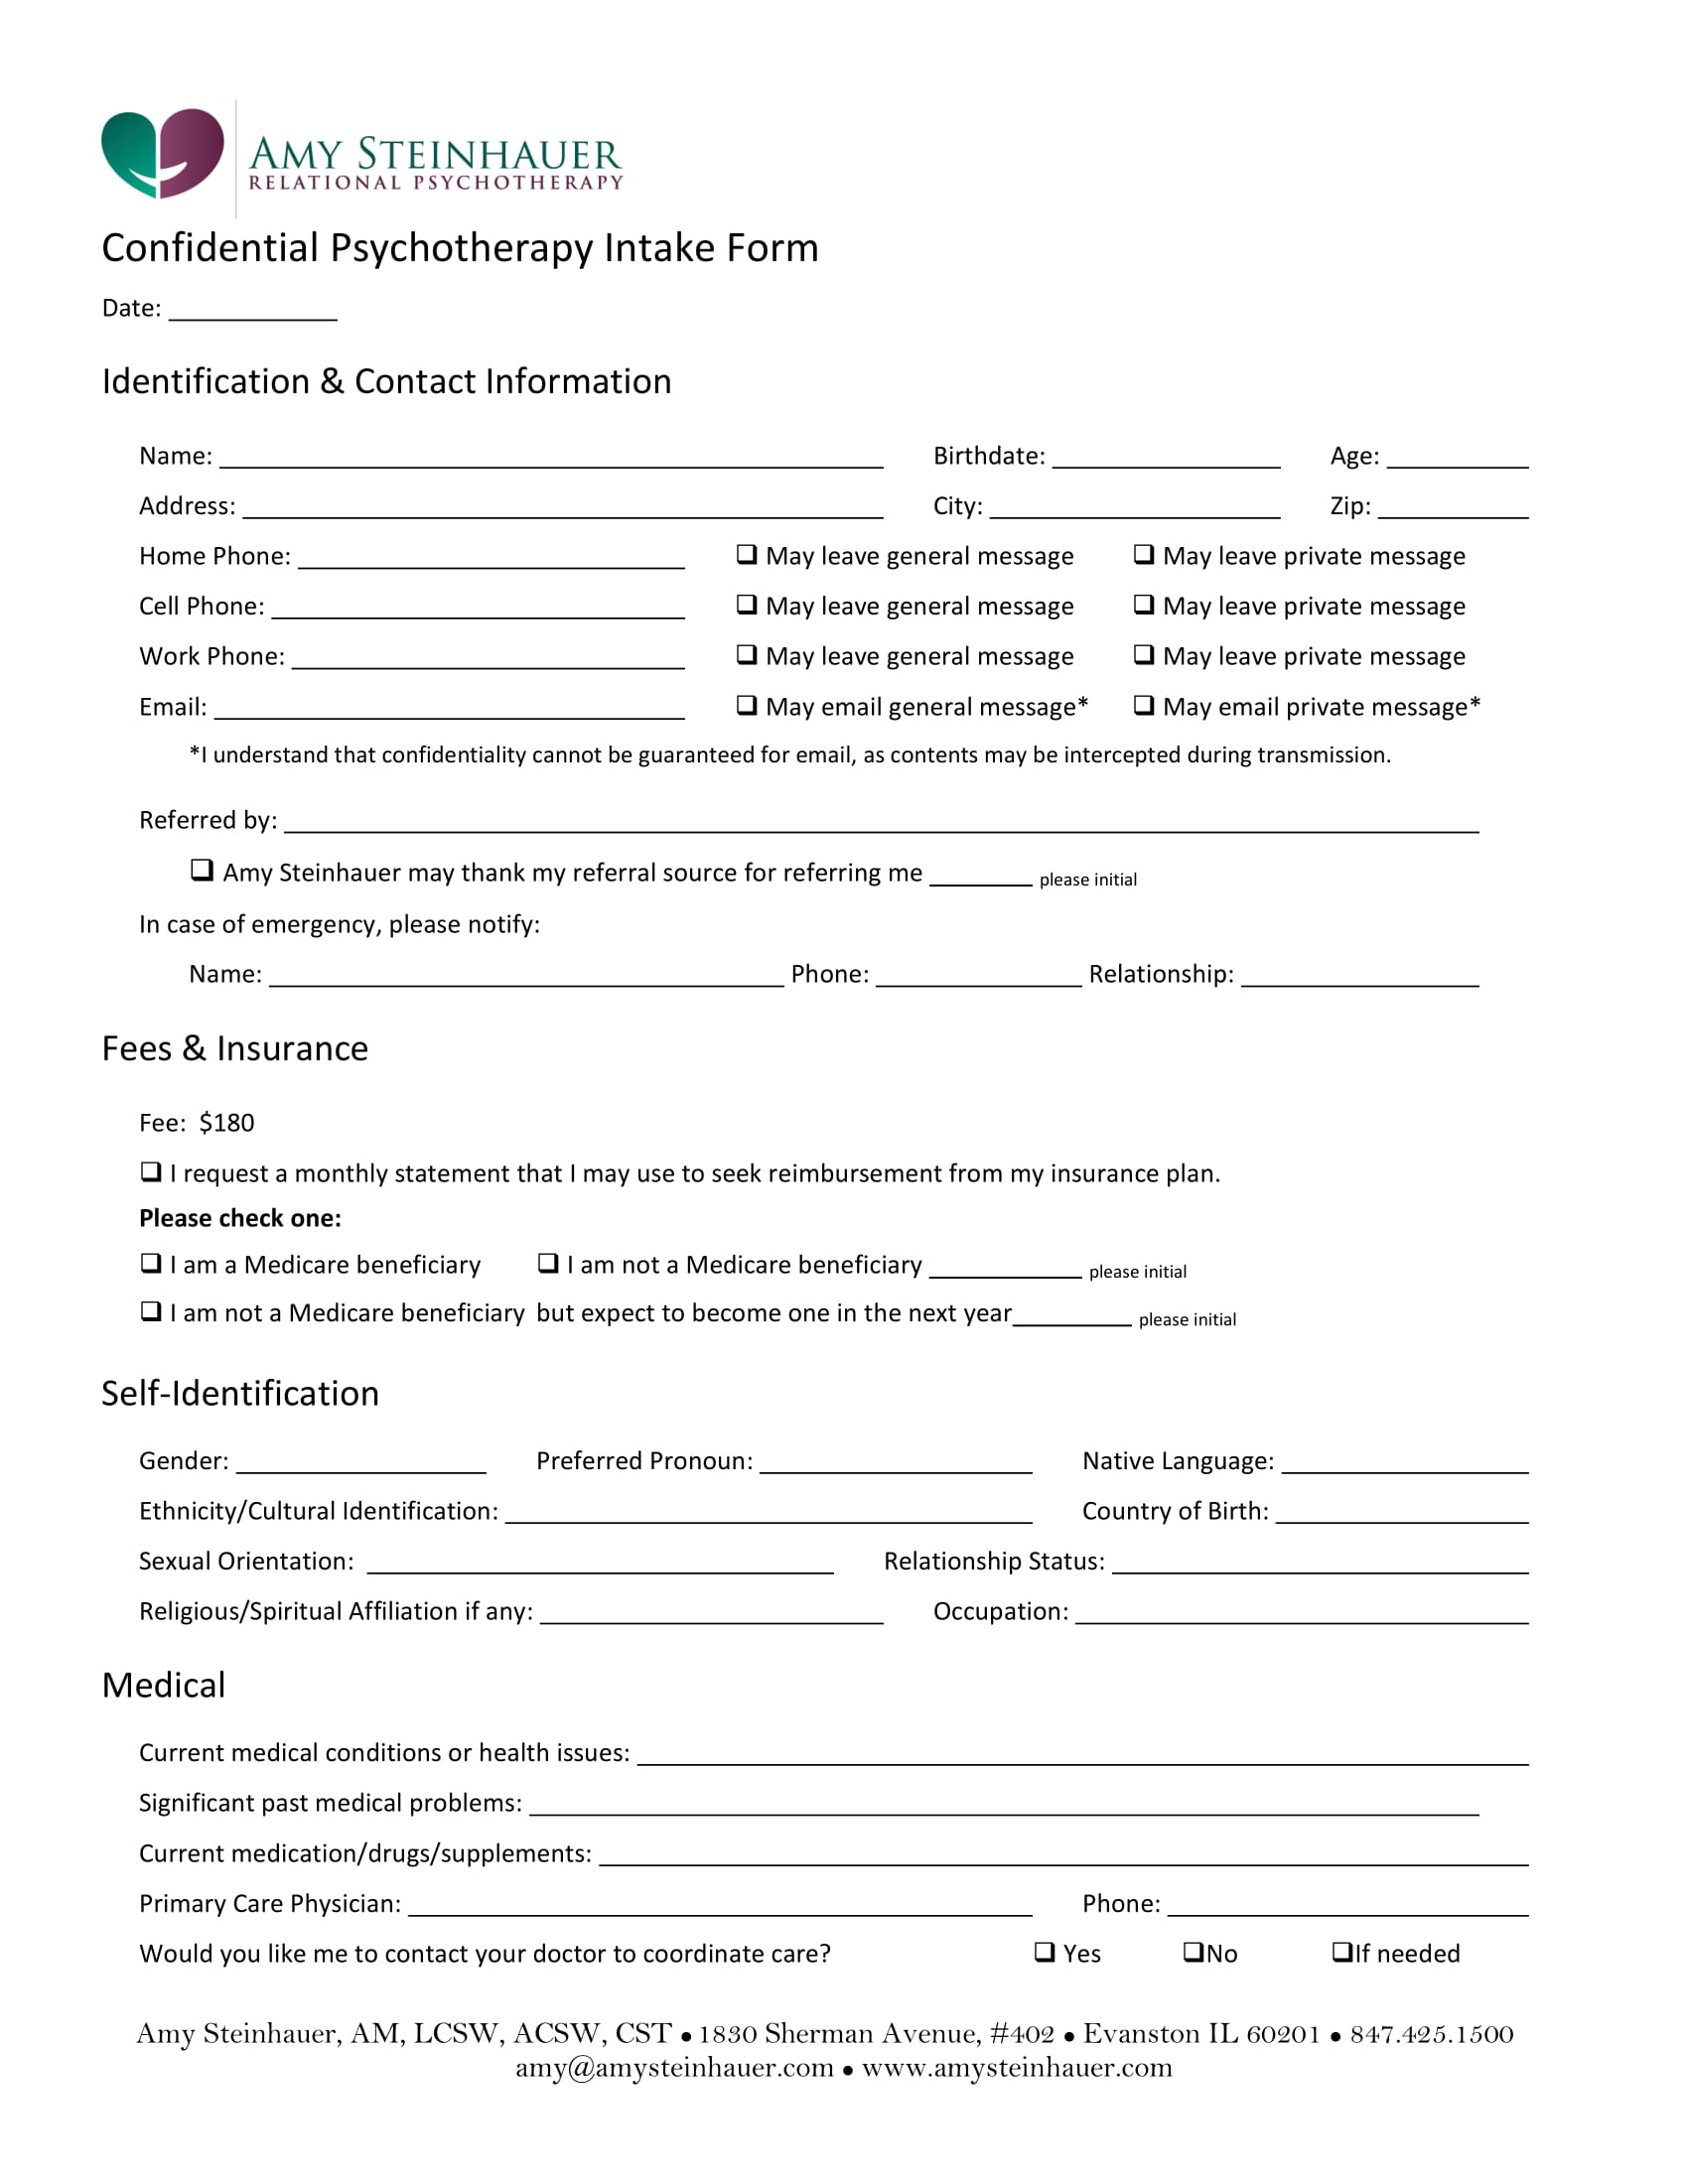 confidential psychotherapy intake form 1